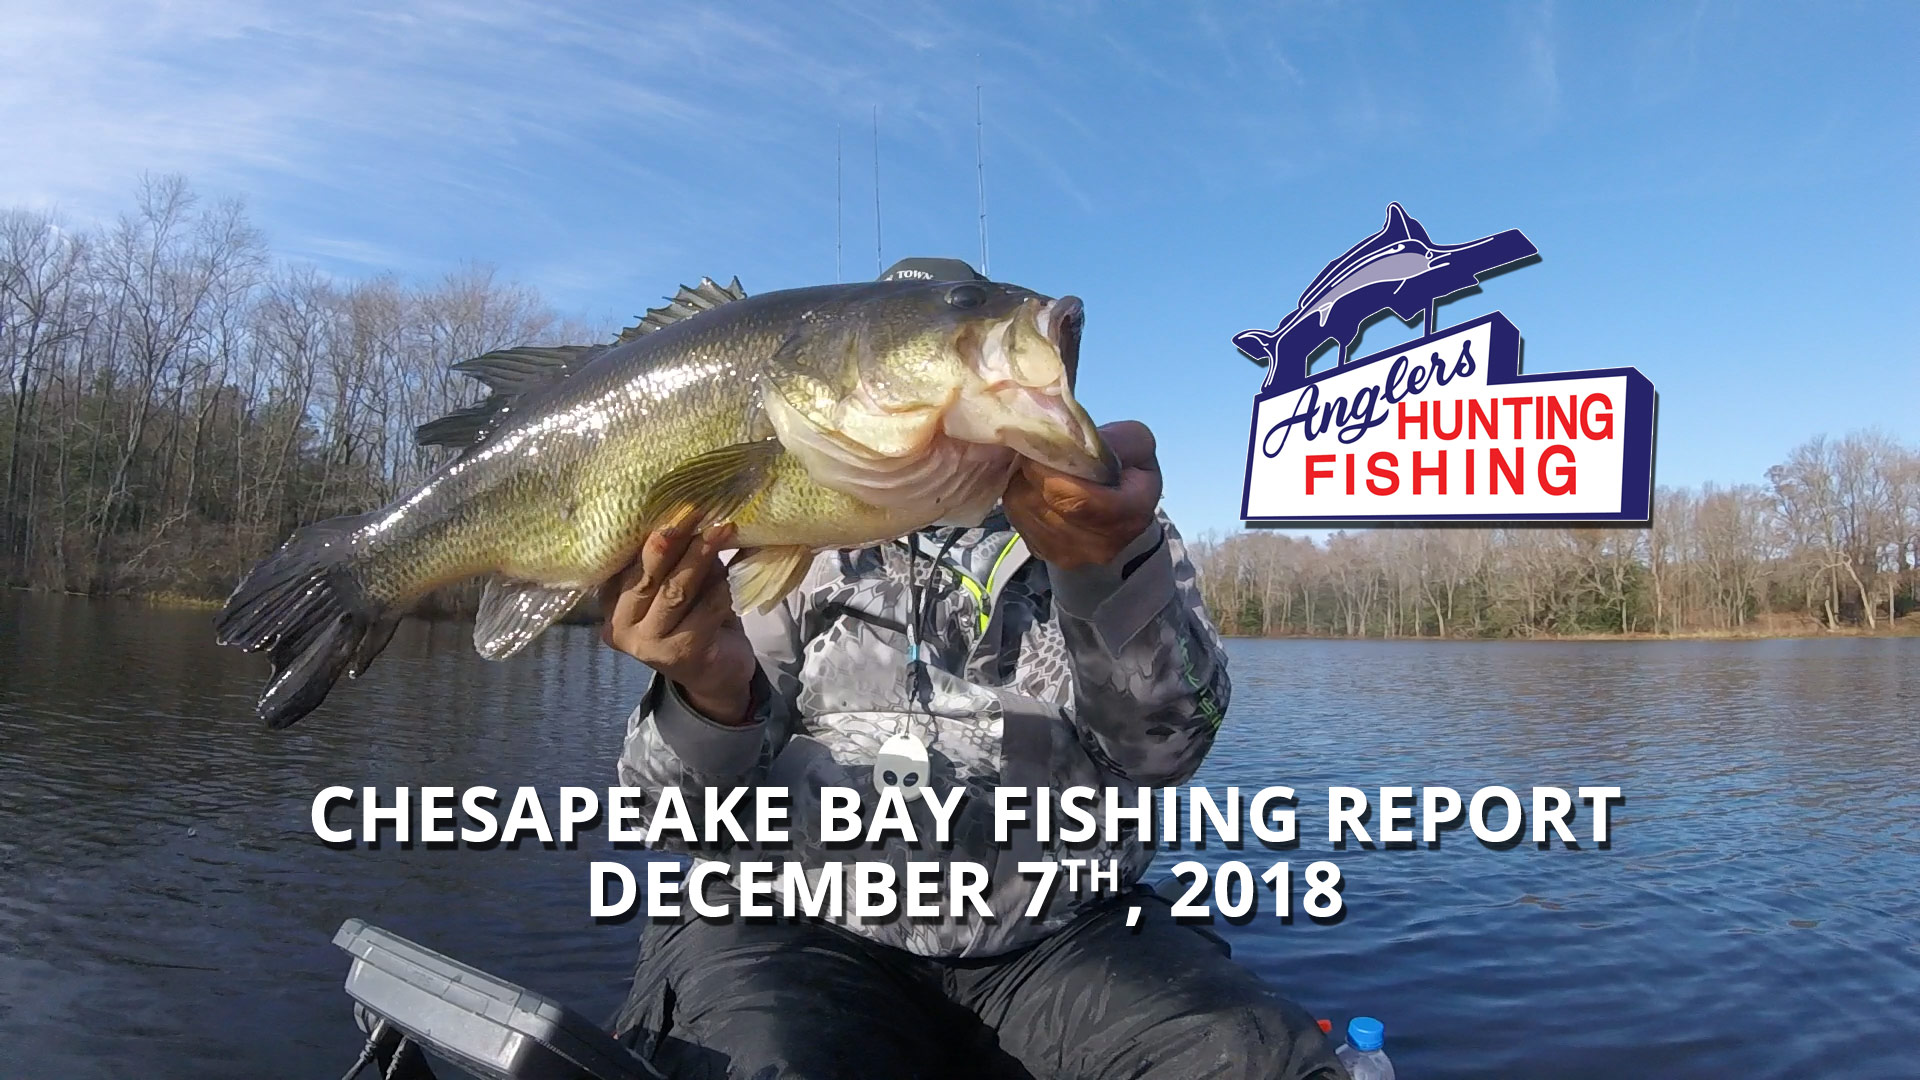 Chesapeake Bay Fishing Report - December 7th, 2018